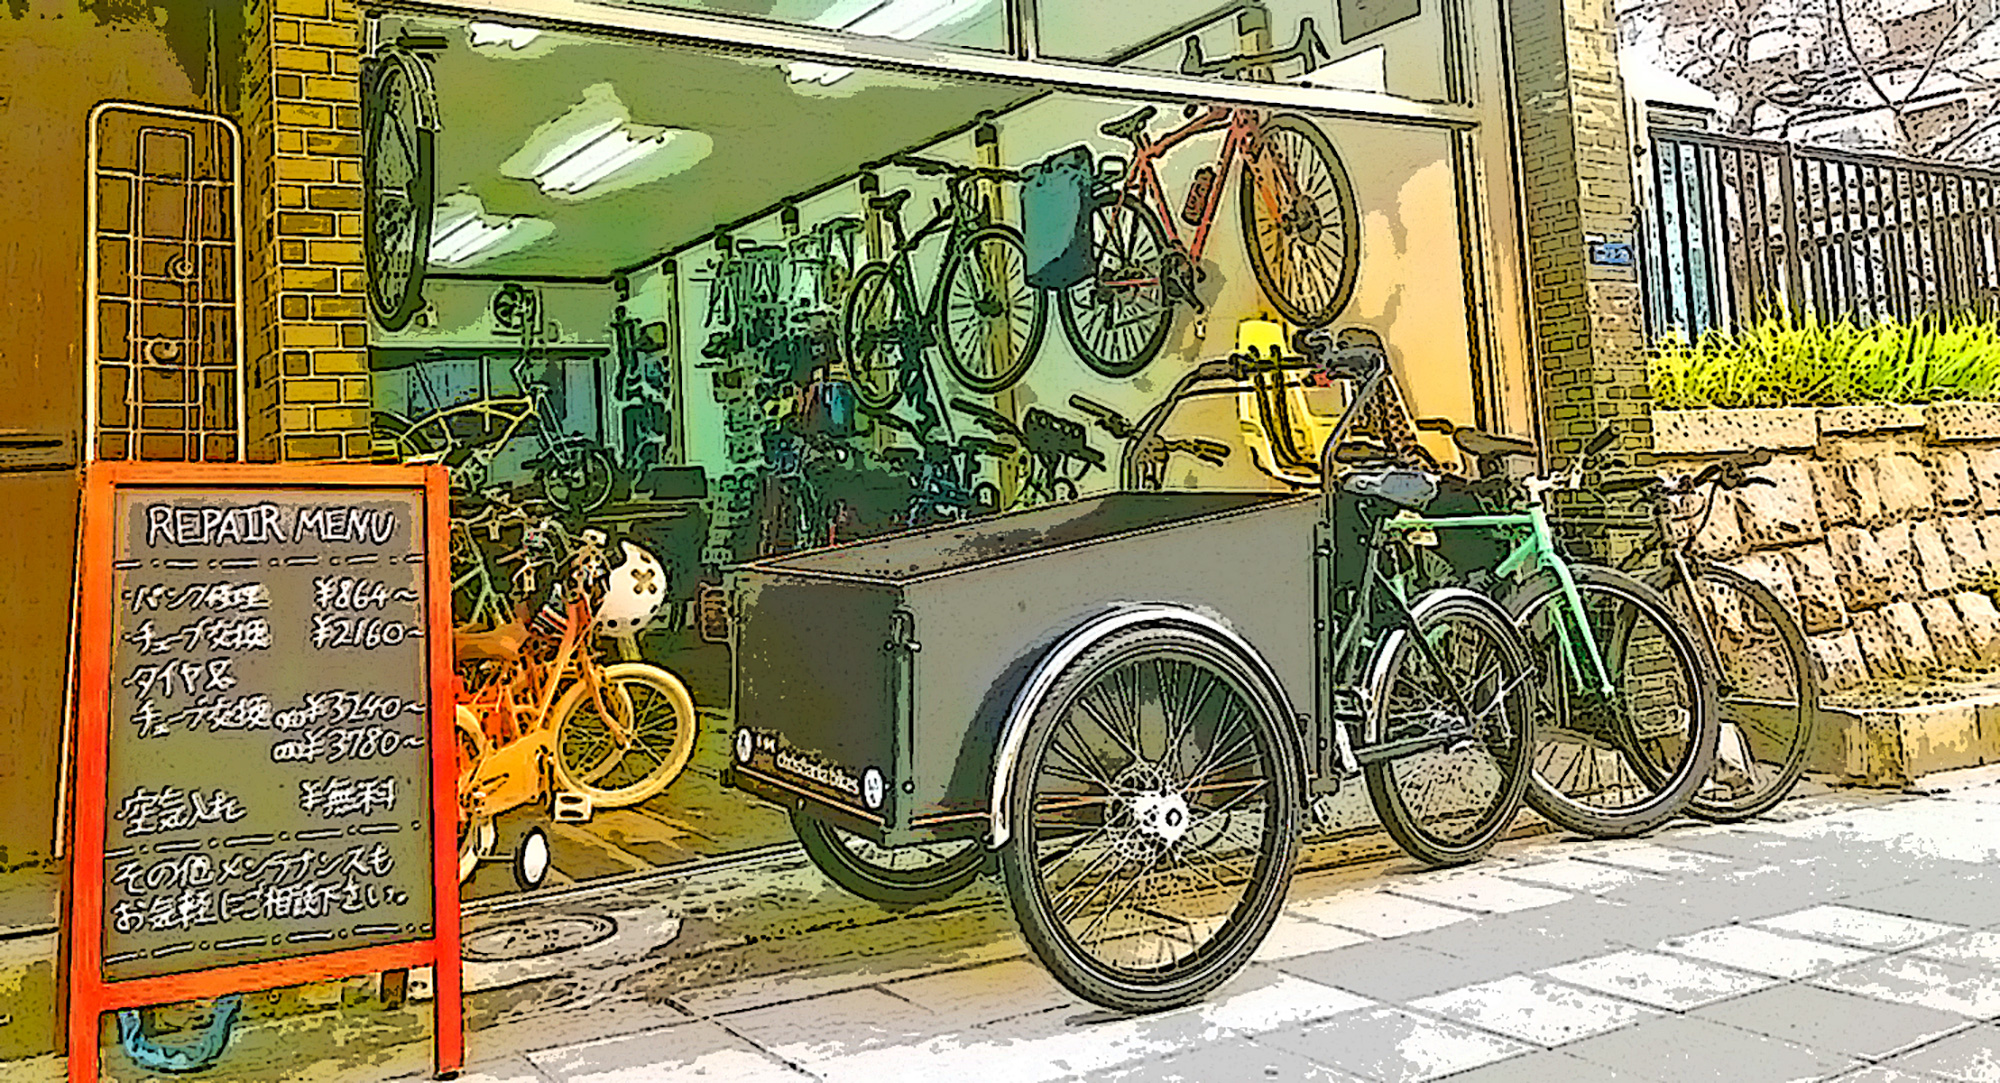 PARKSIDE BICYCLES